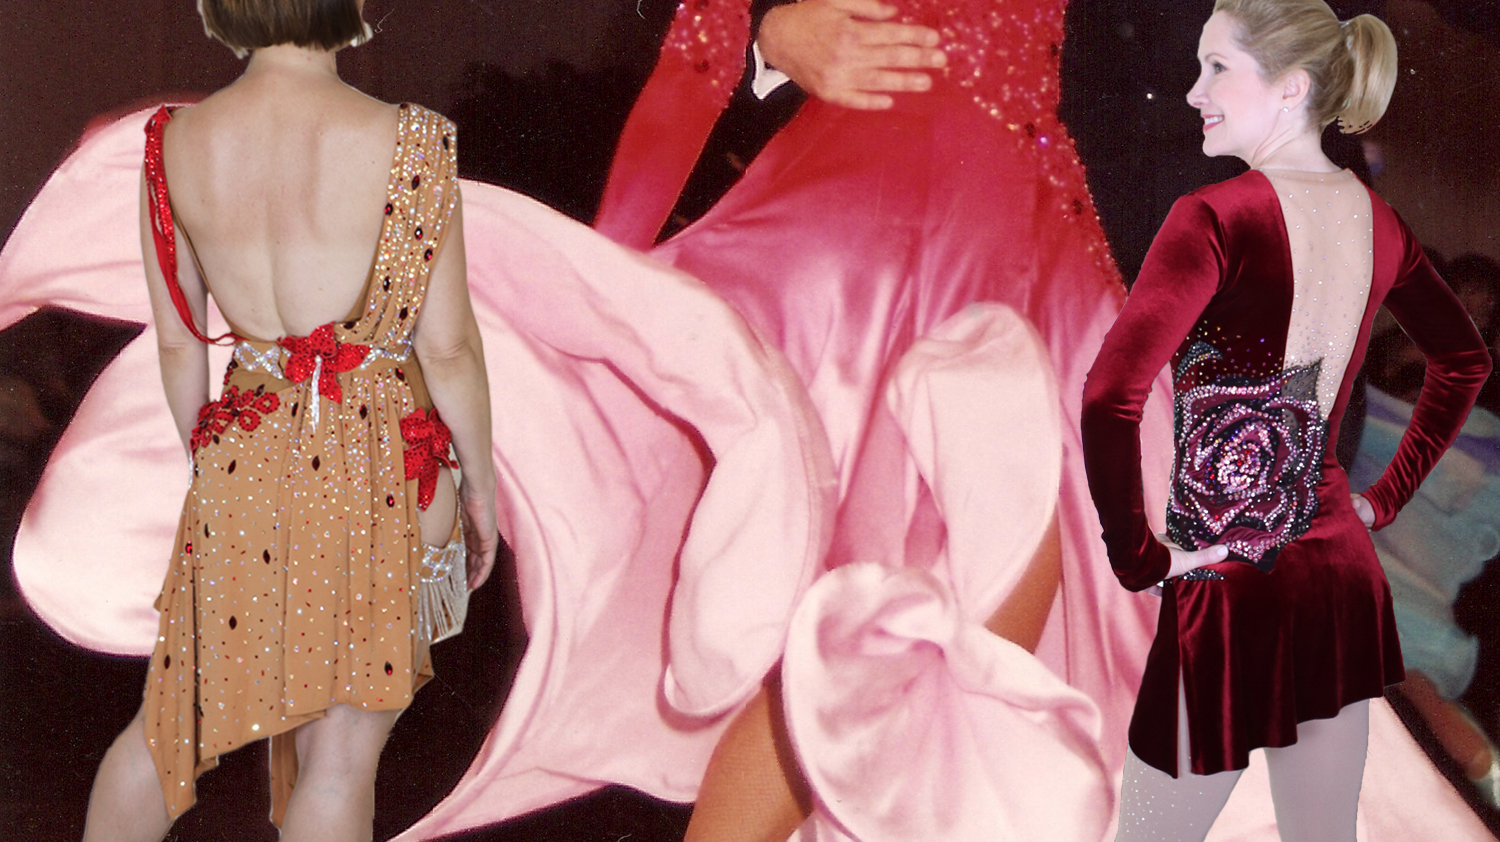 Stretch Fabric DOs and DON'Ts for ballroom dancing and figure skating dresses